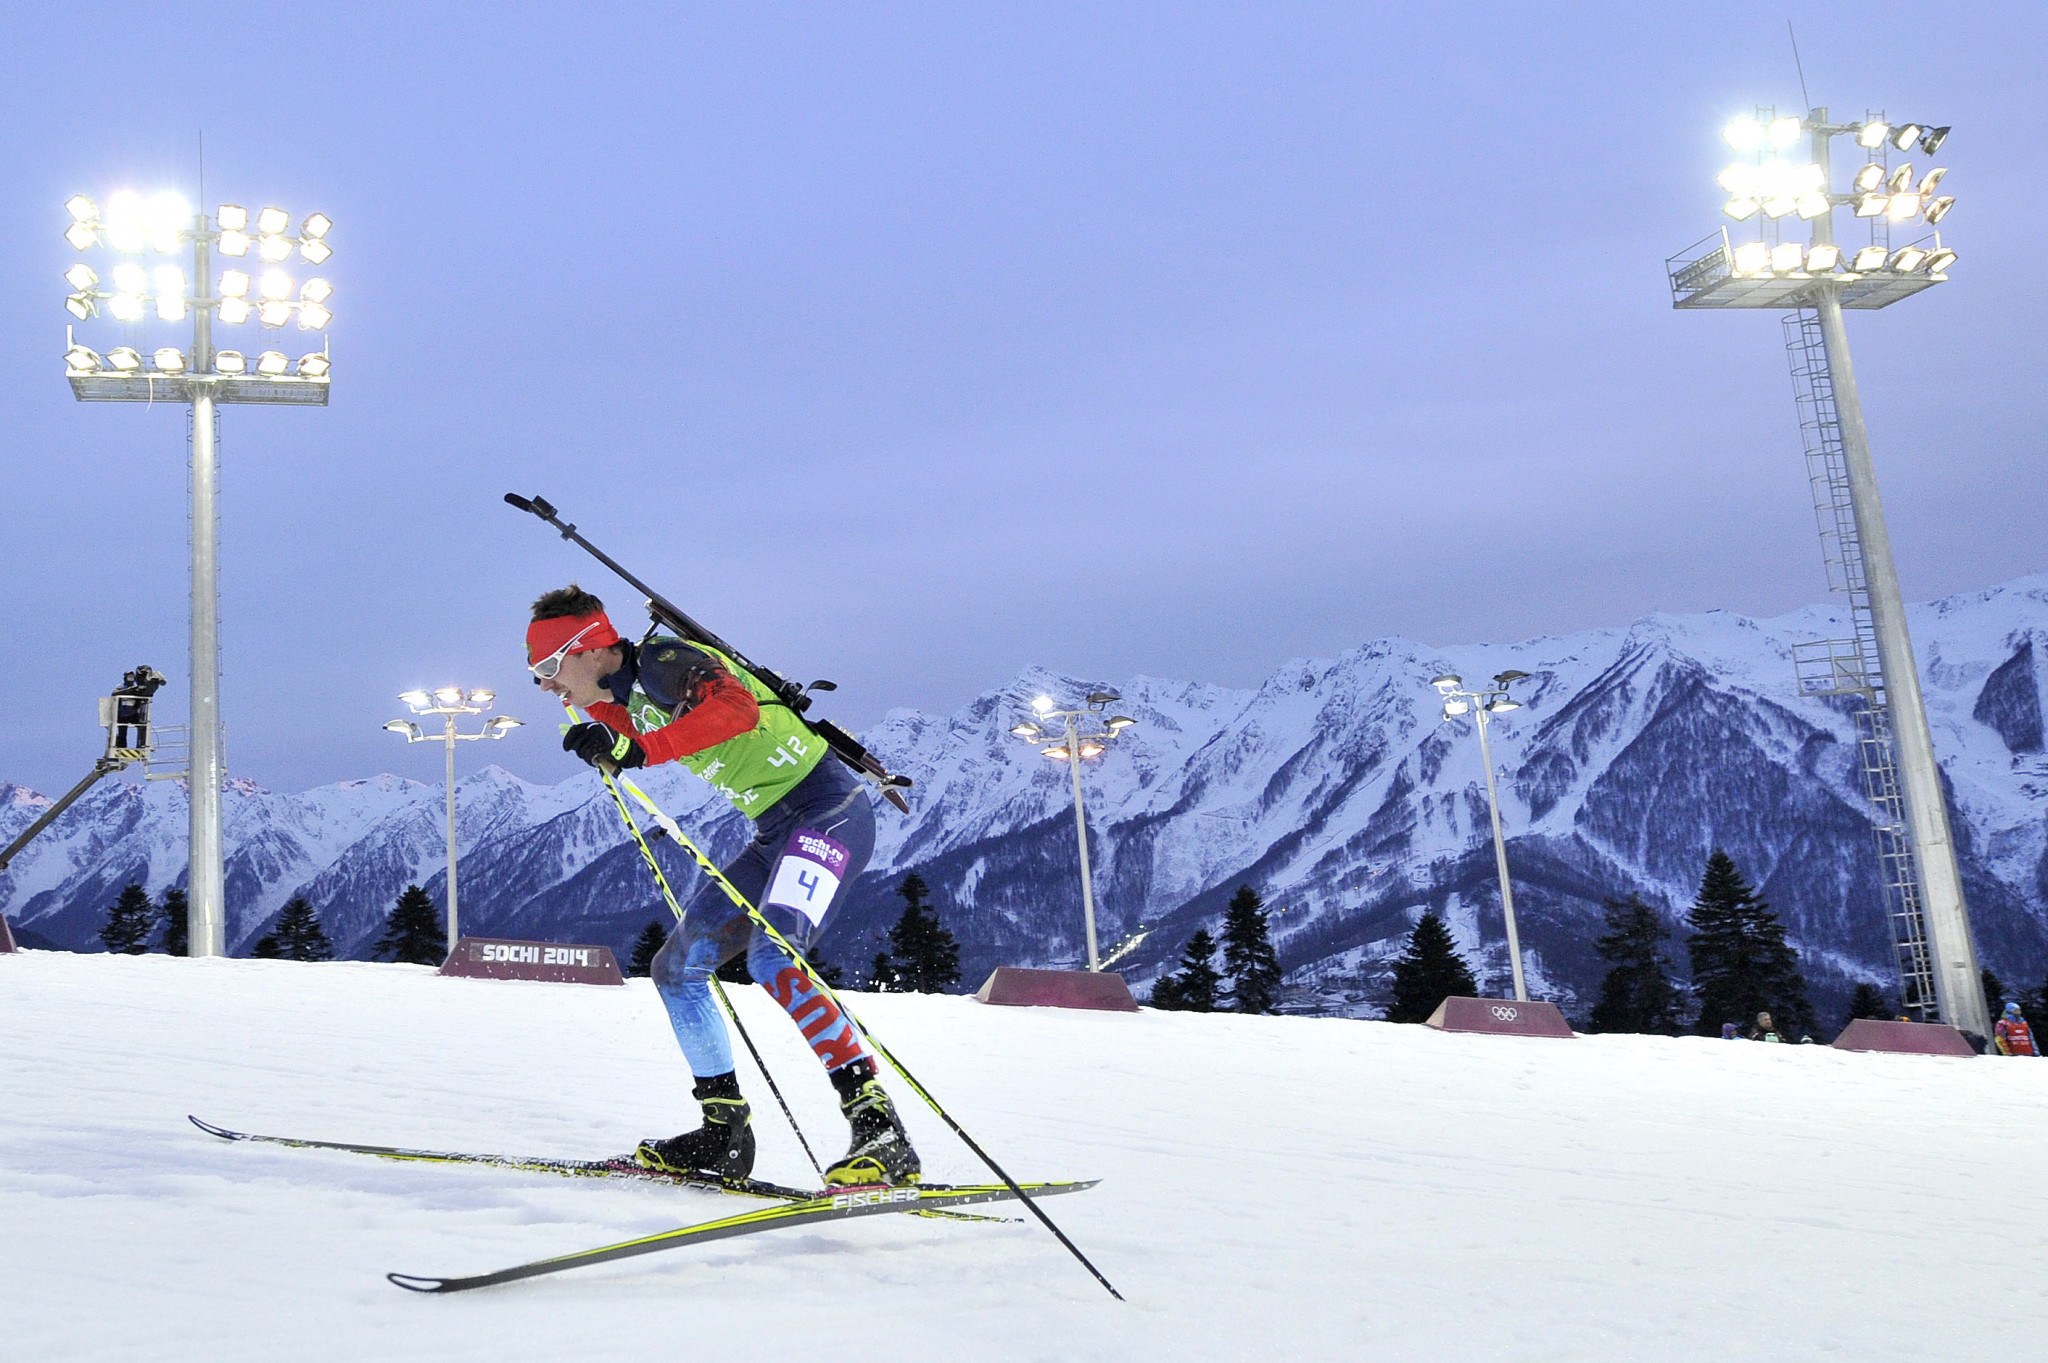 Climate change is one of the greatest concerns for biathlon fans, according to an IBU survey ©Getty Images